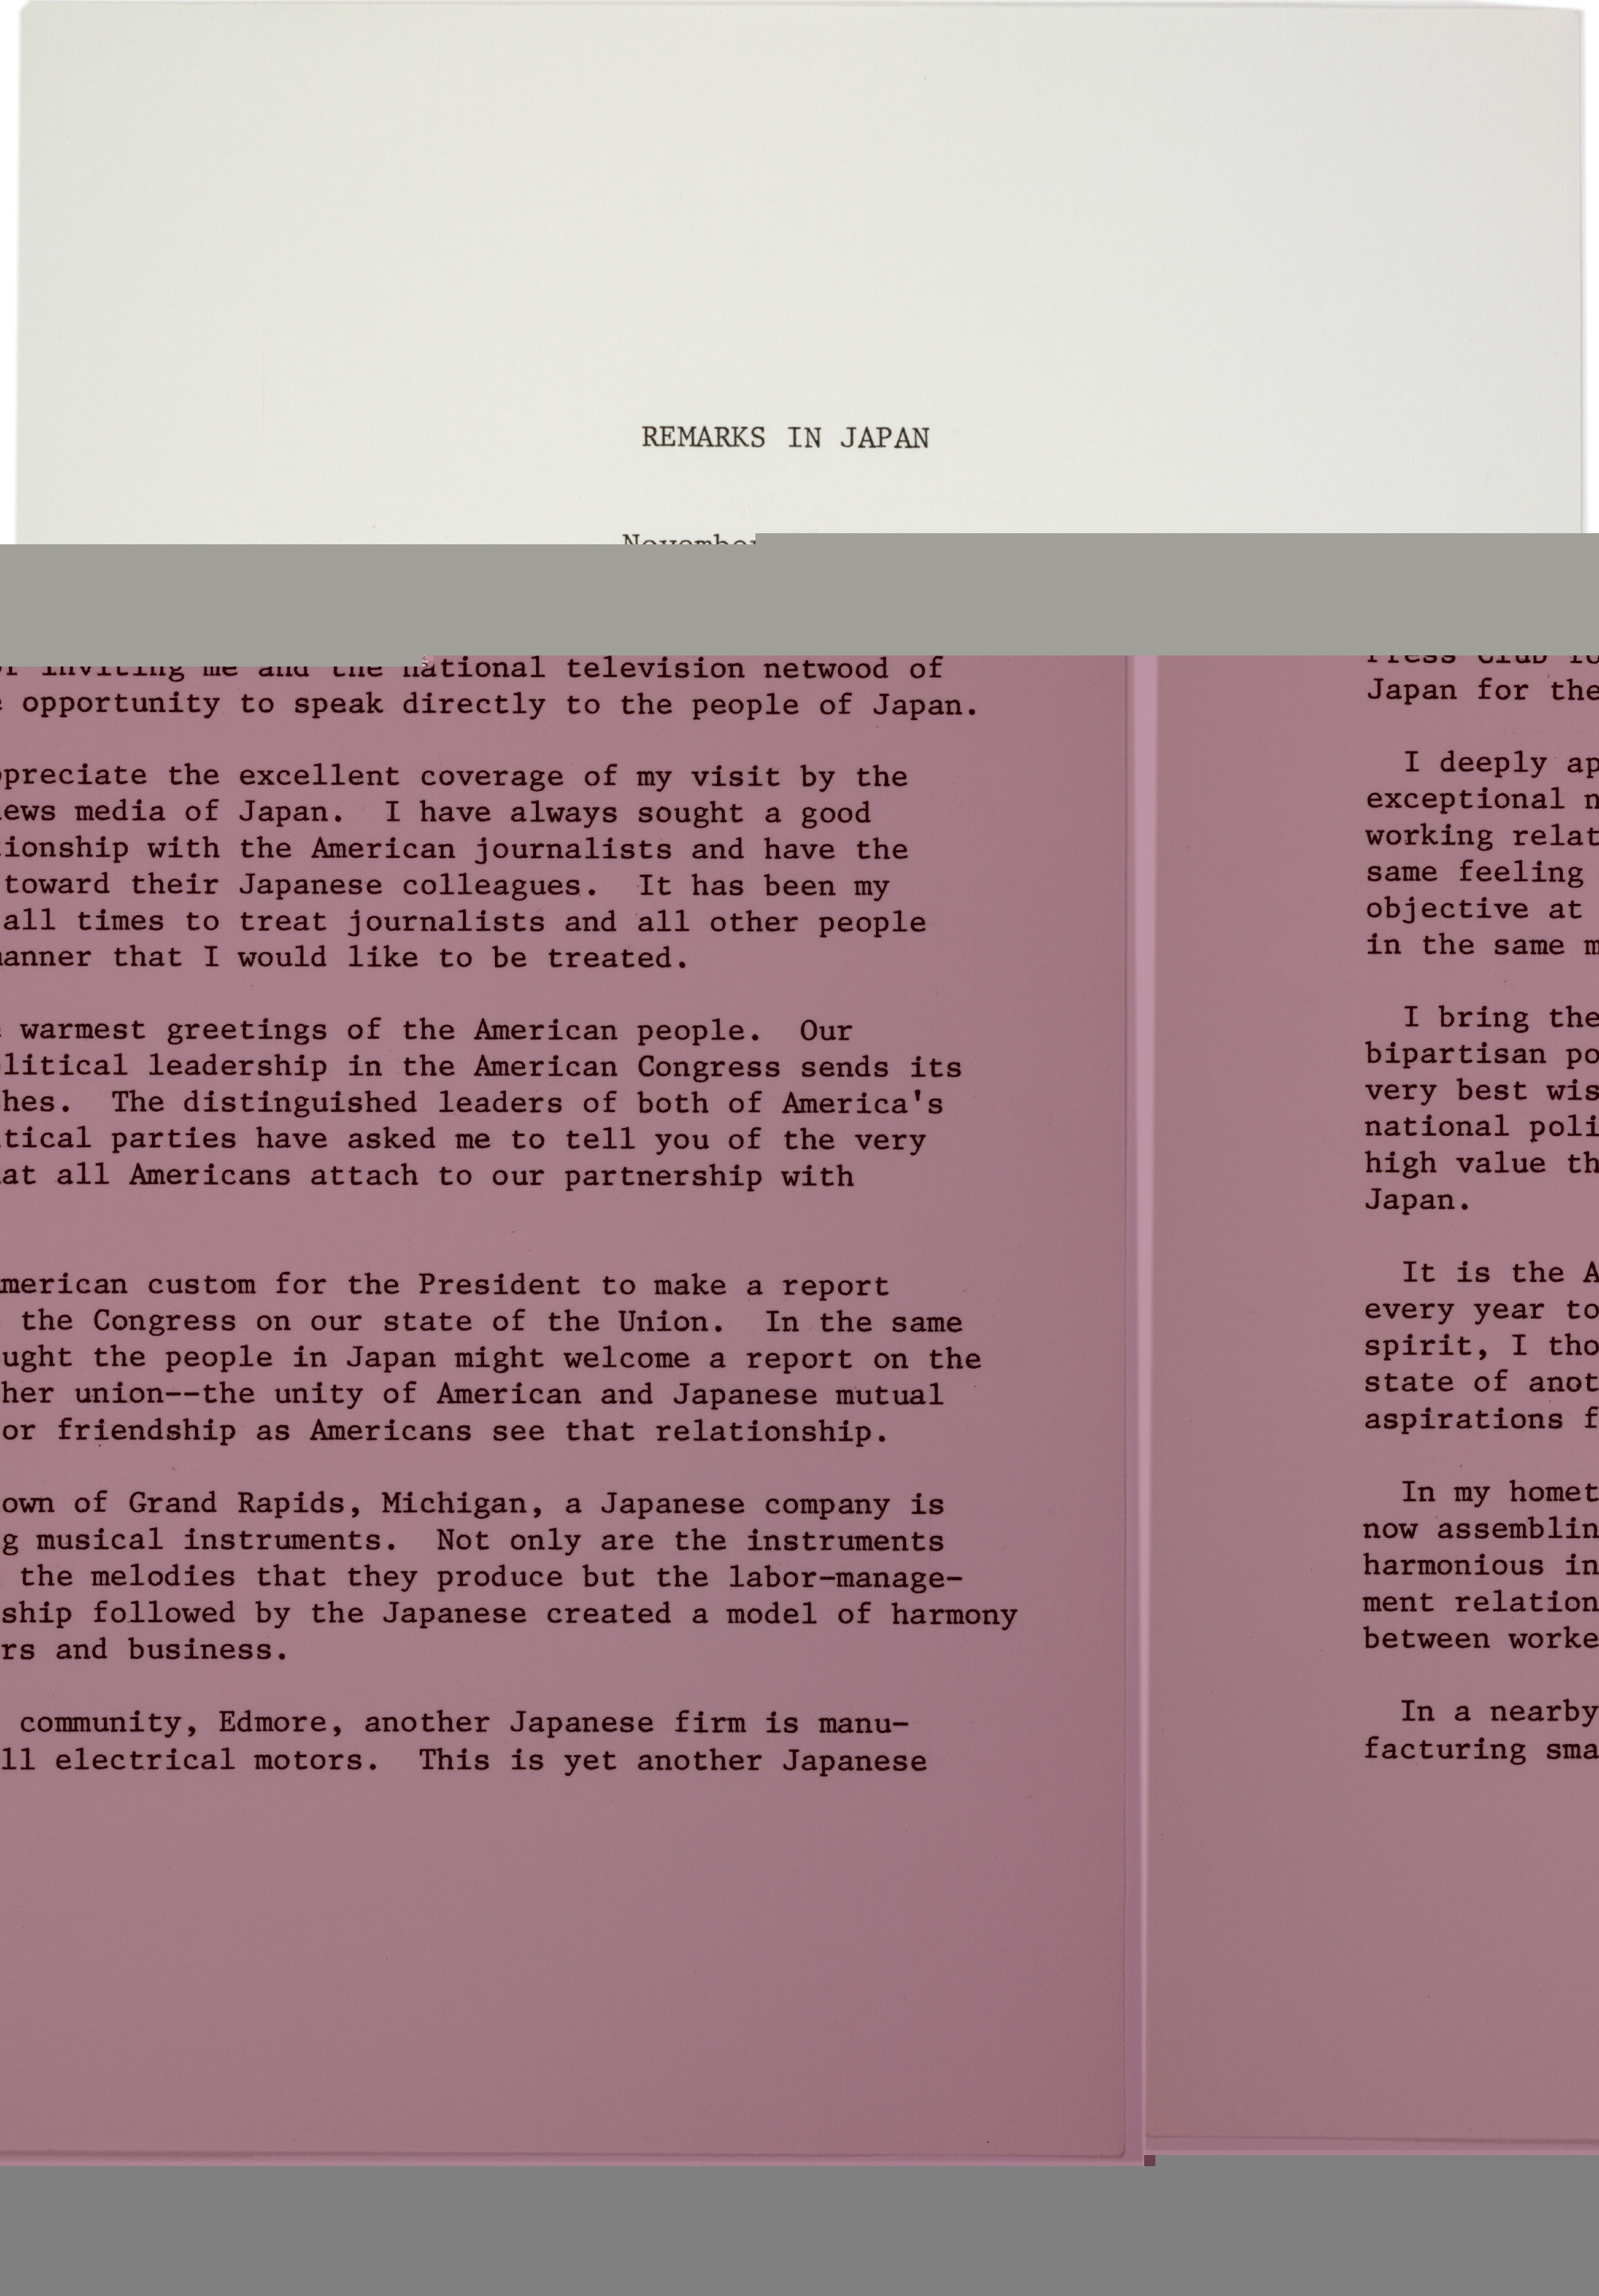 president ford s remarks in 1974 the gilder lehrman president ford s remarks in 1974